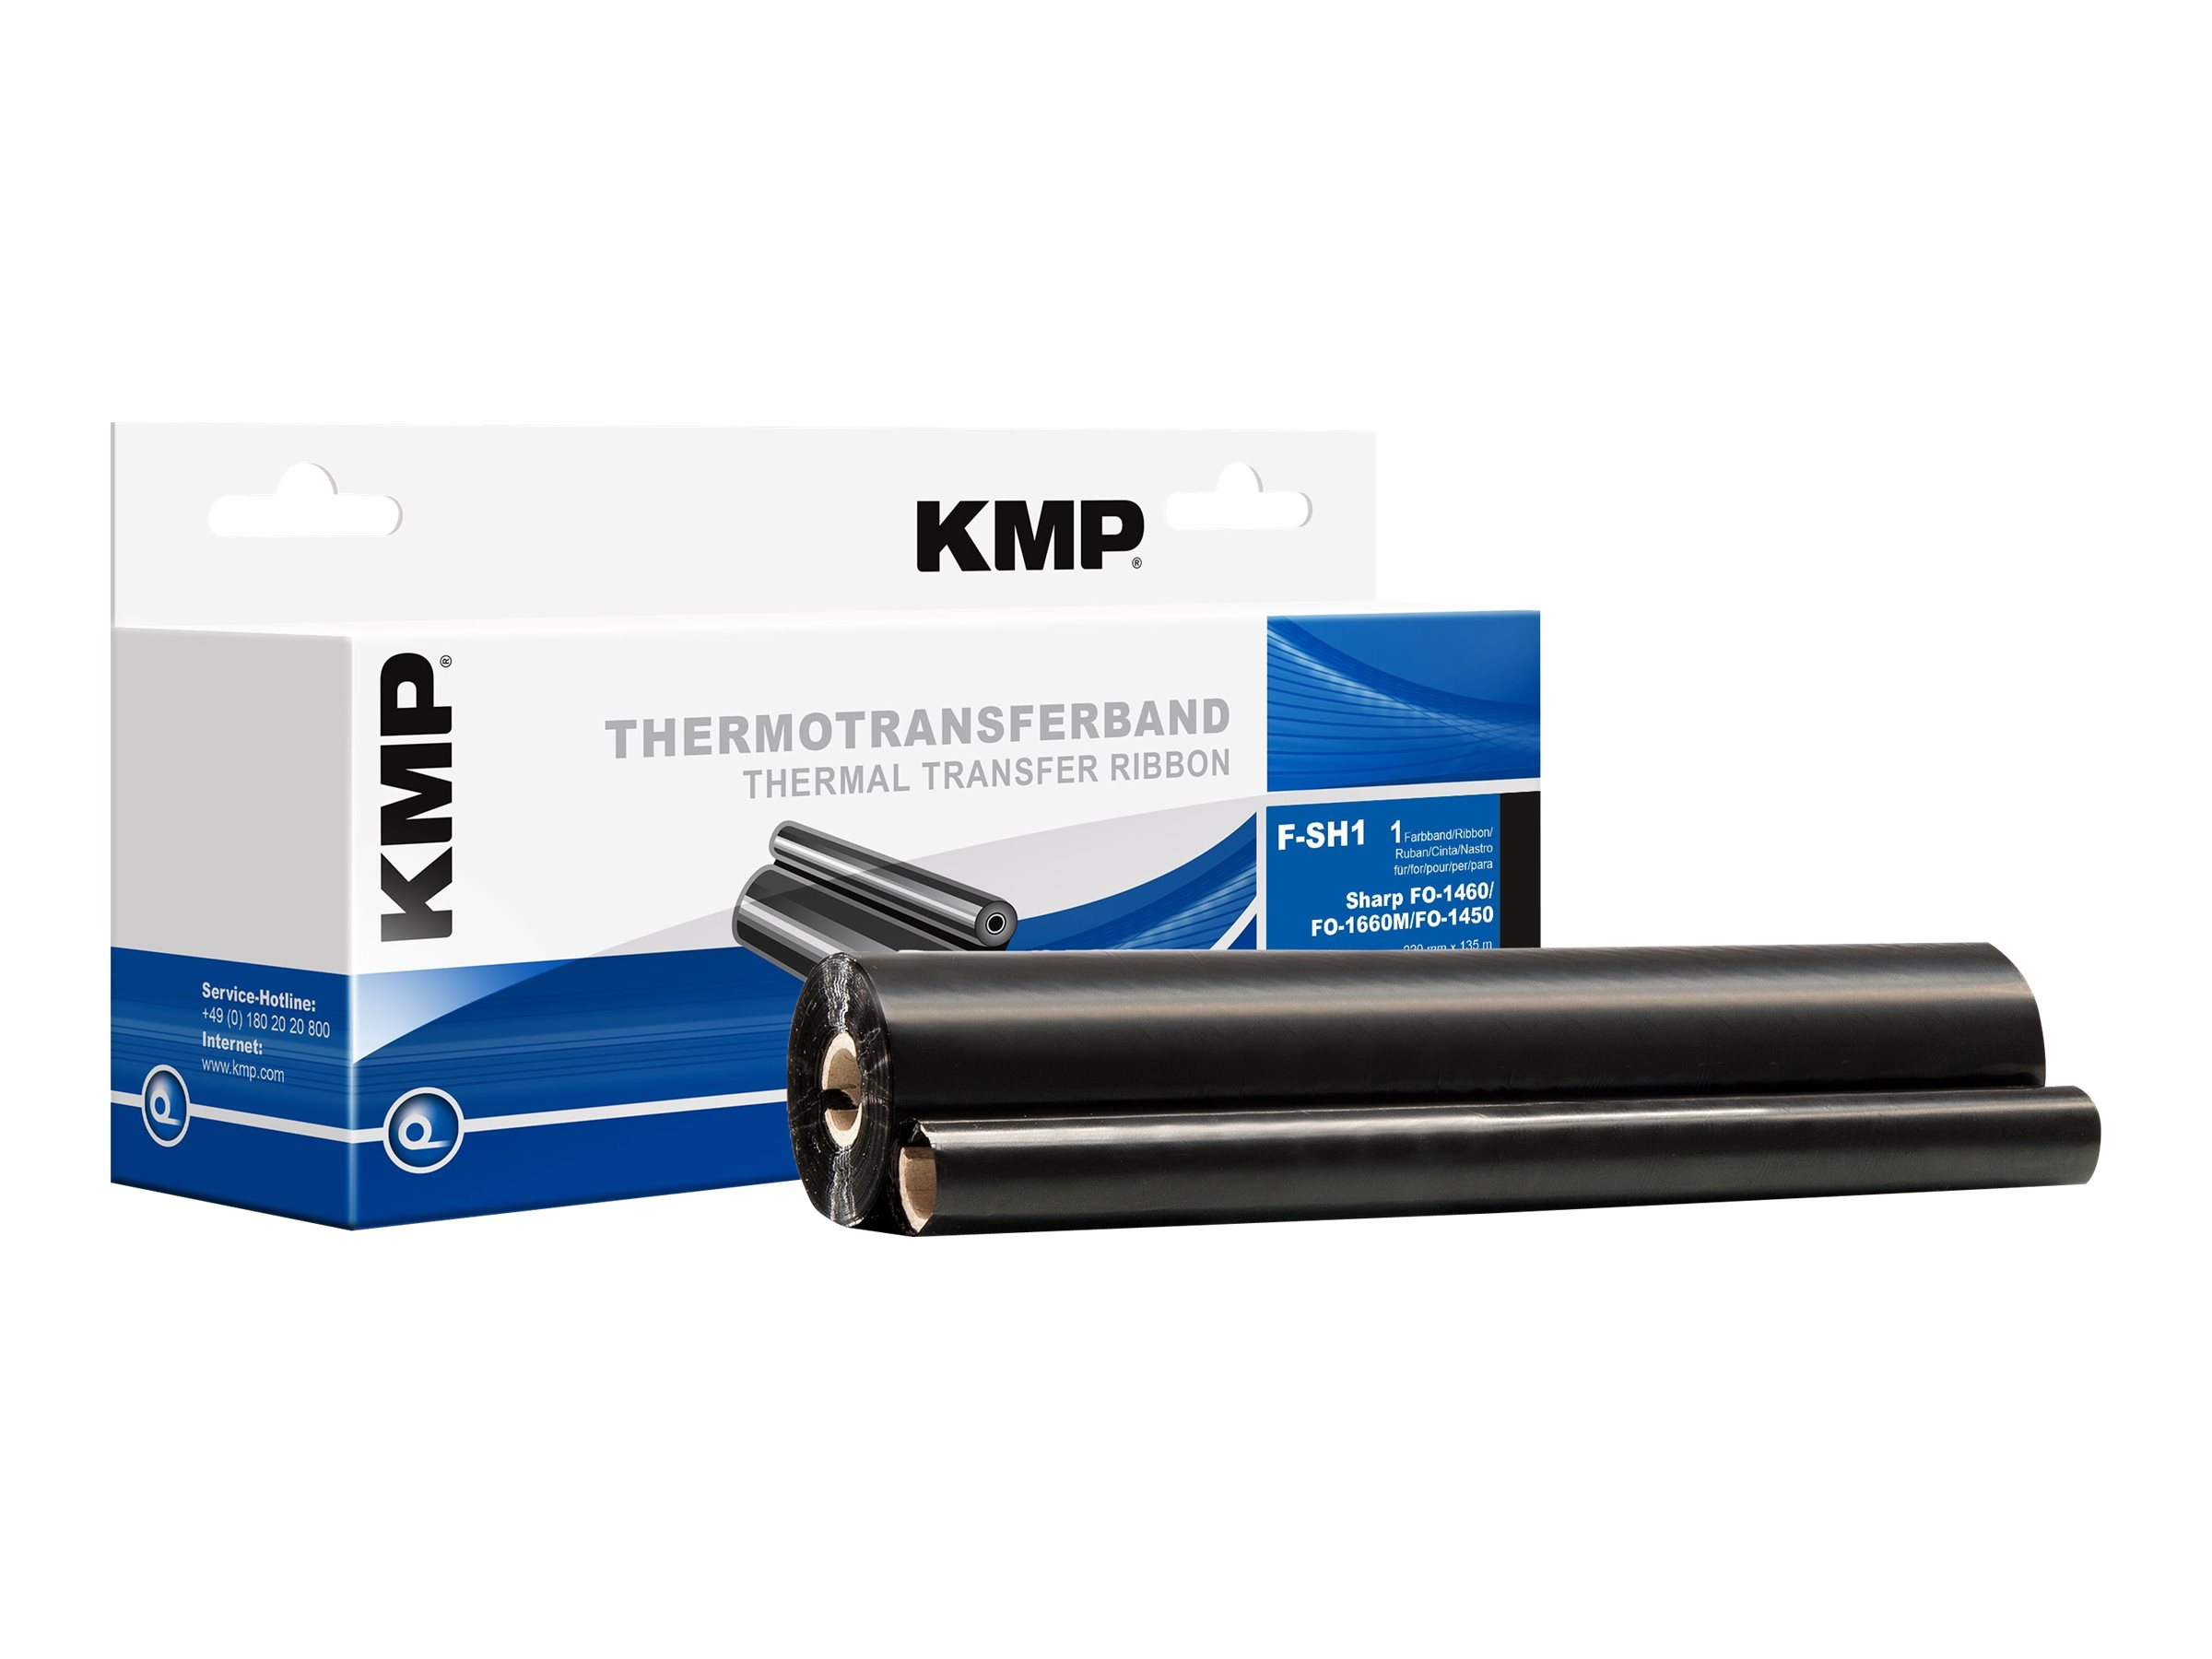 KMP F-SH1 - Schwarz - 220 mm x 135 m - Thermotransfer-Farbband (Alternative zu: Sharp UX-15CR) - für Sharp FO-14XX, 15XX, 16XX, 1850; UX-1000, 1100, 1300, 1400, 500, 510, 600